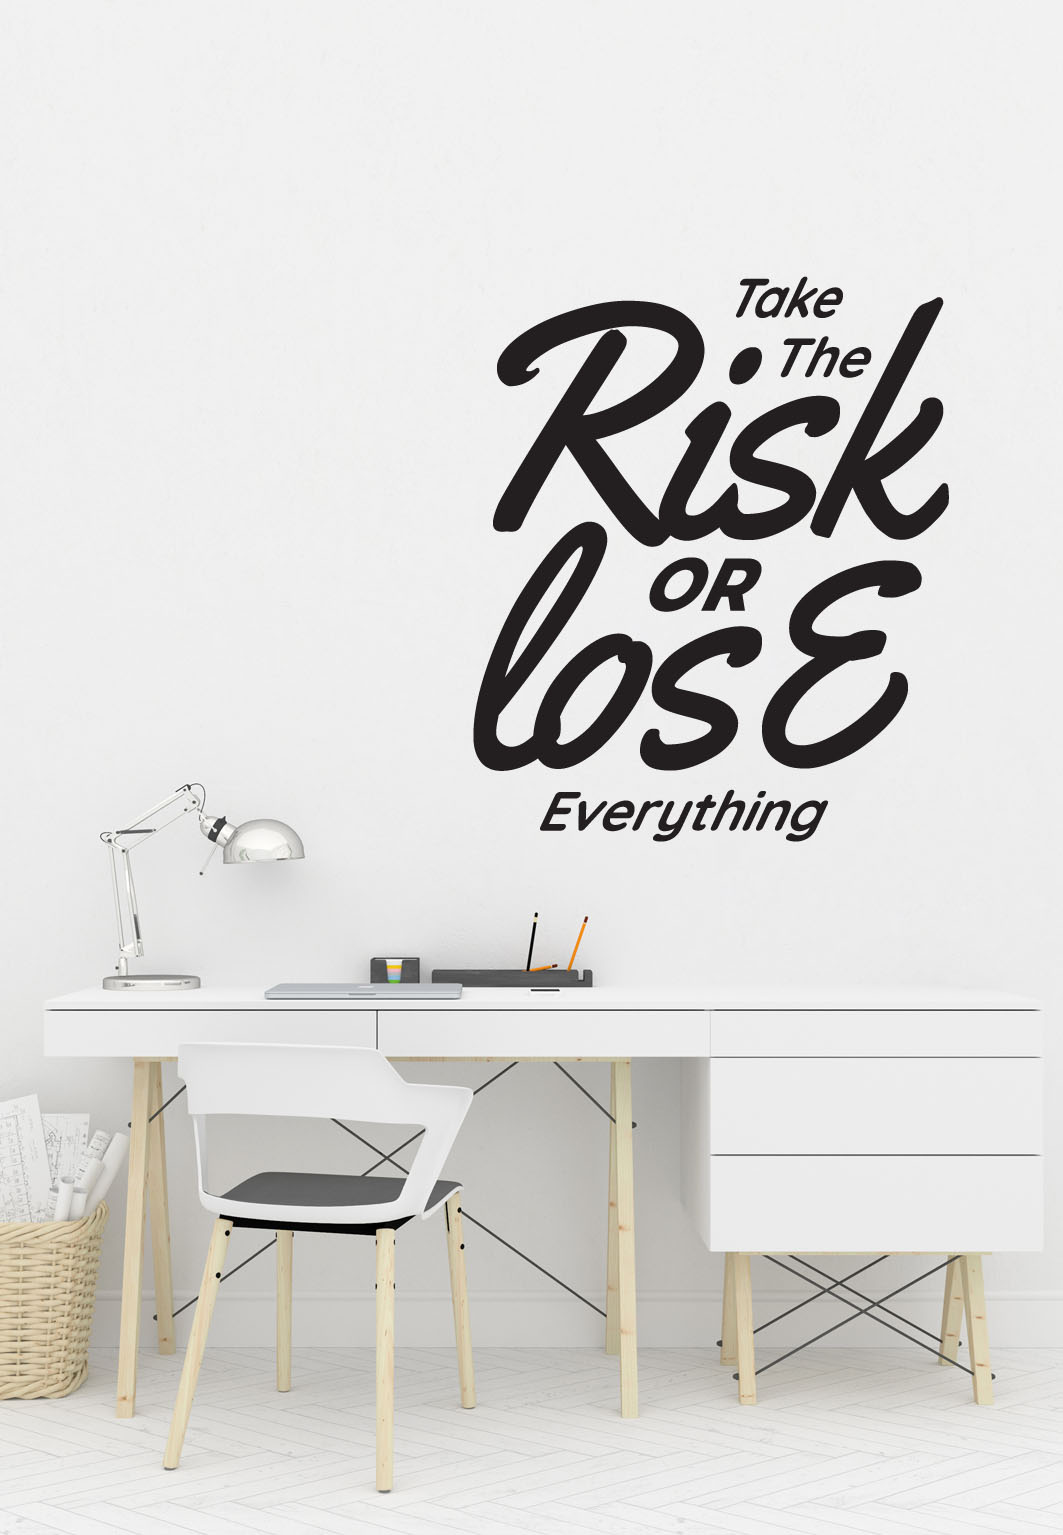 מדבקת קיר - Take the Risk or lose everything